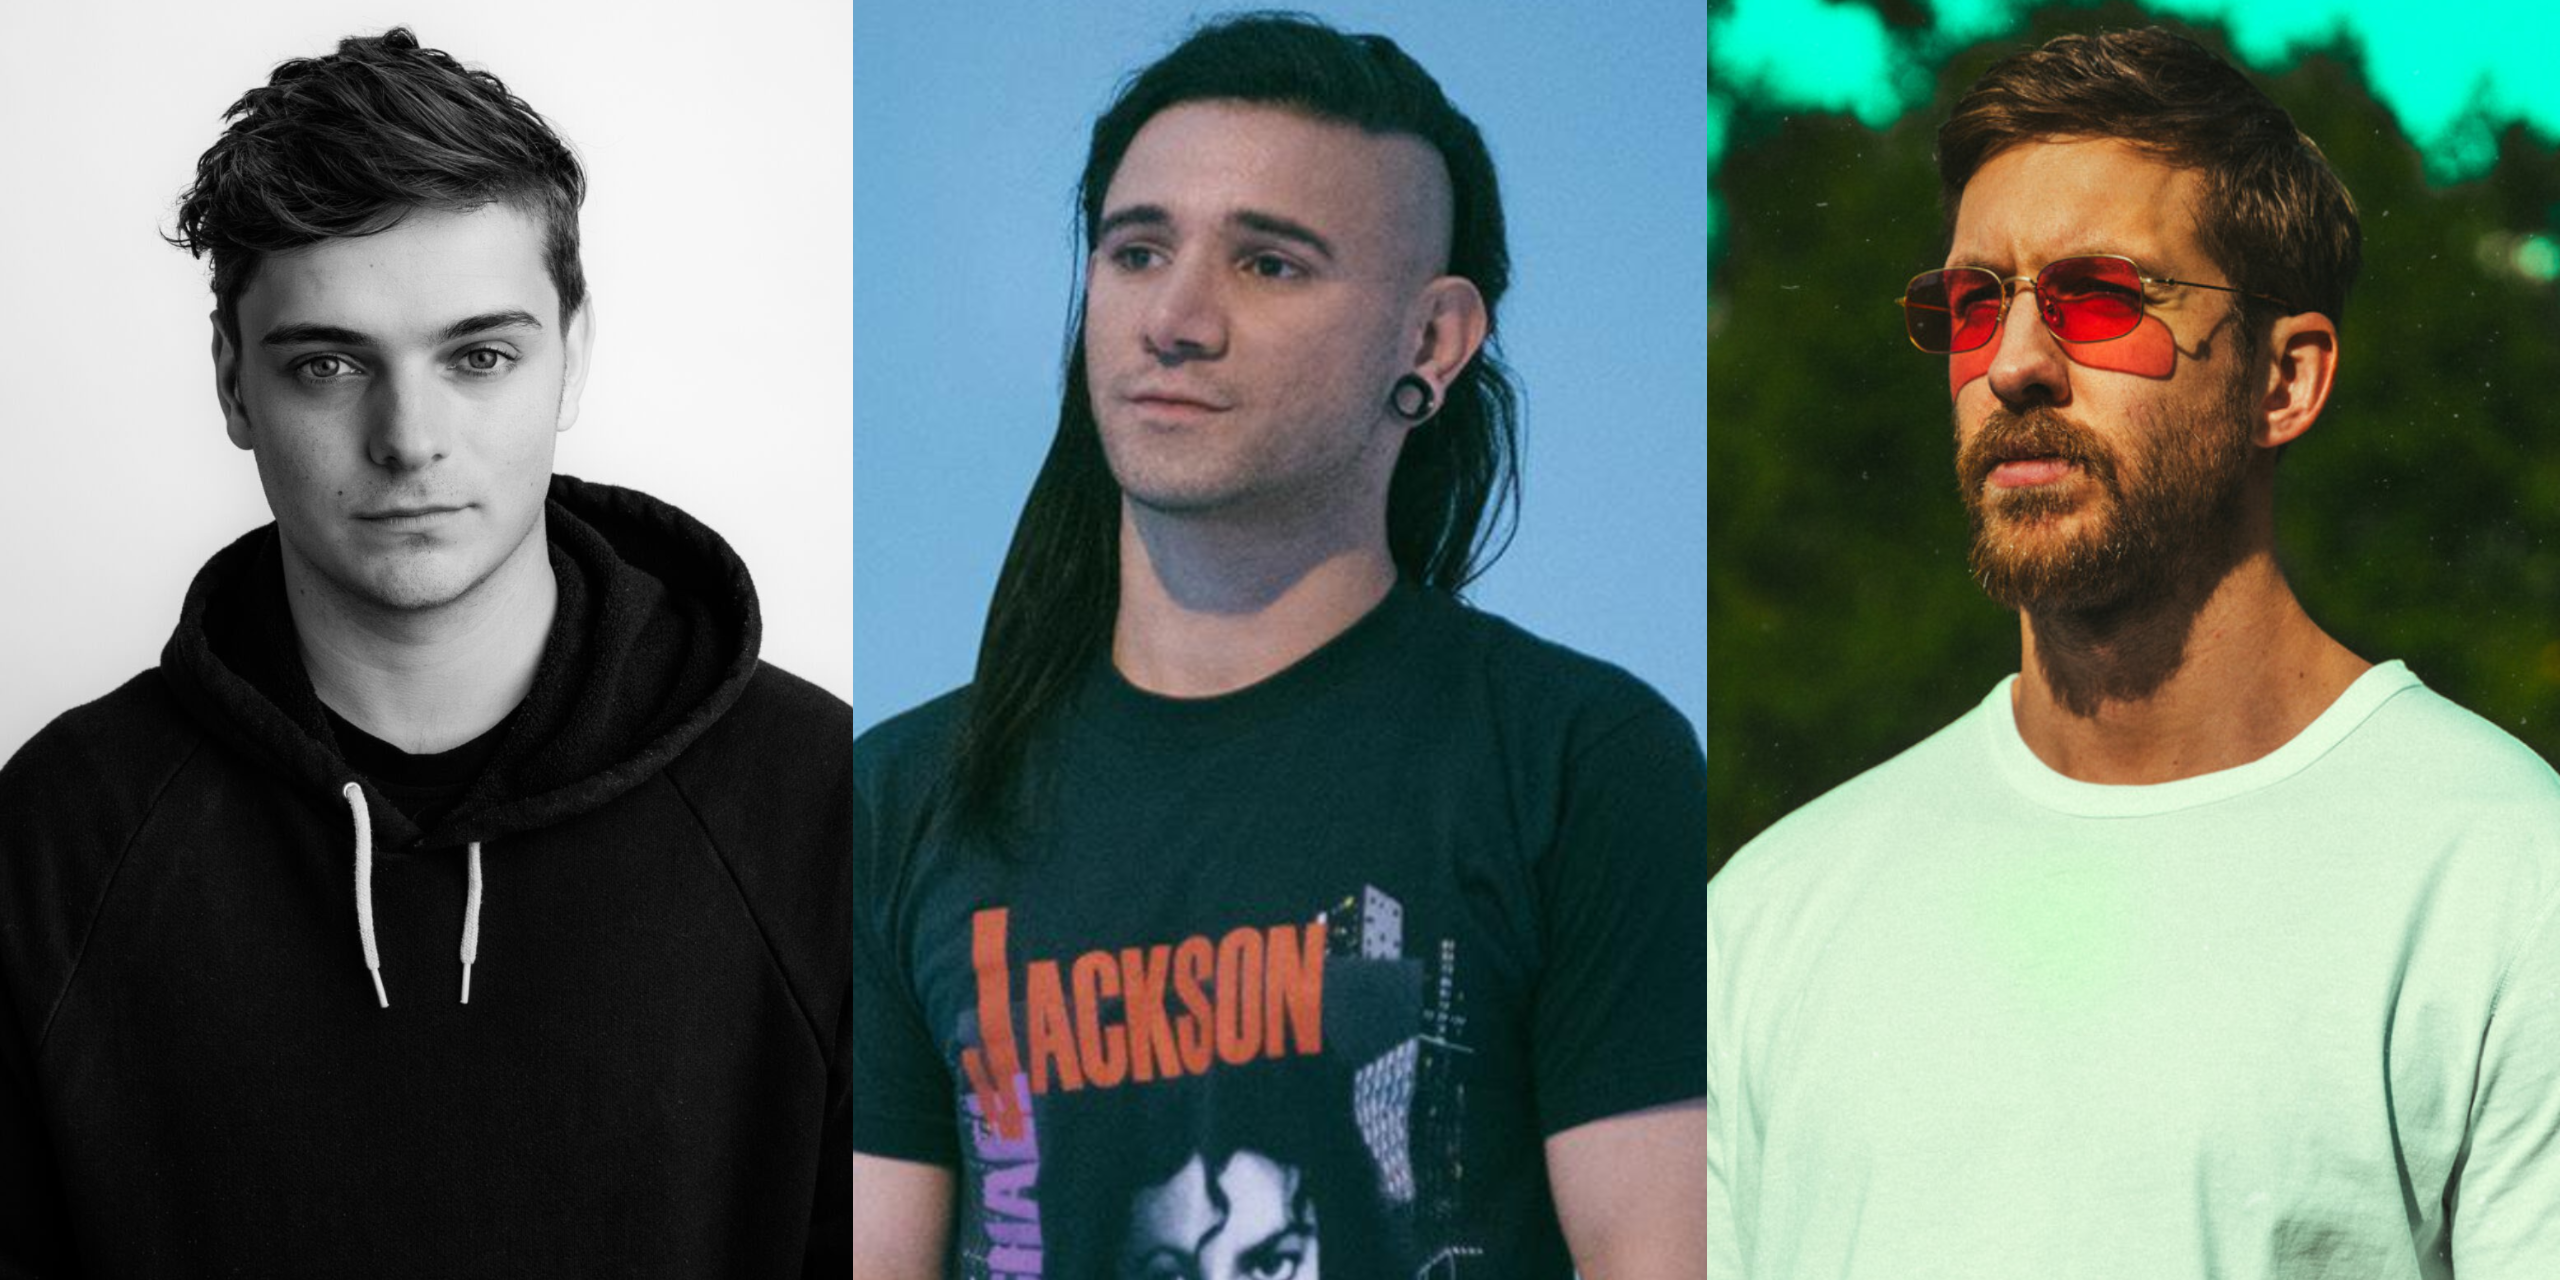 BREAKING: Djakarta Warehouse Project announces Phase 1 line-up – Martin Garrix, Skrillex, Calvin Harris, Yellow Claw and more to perform